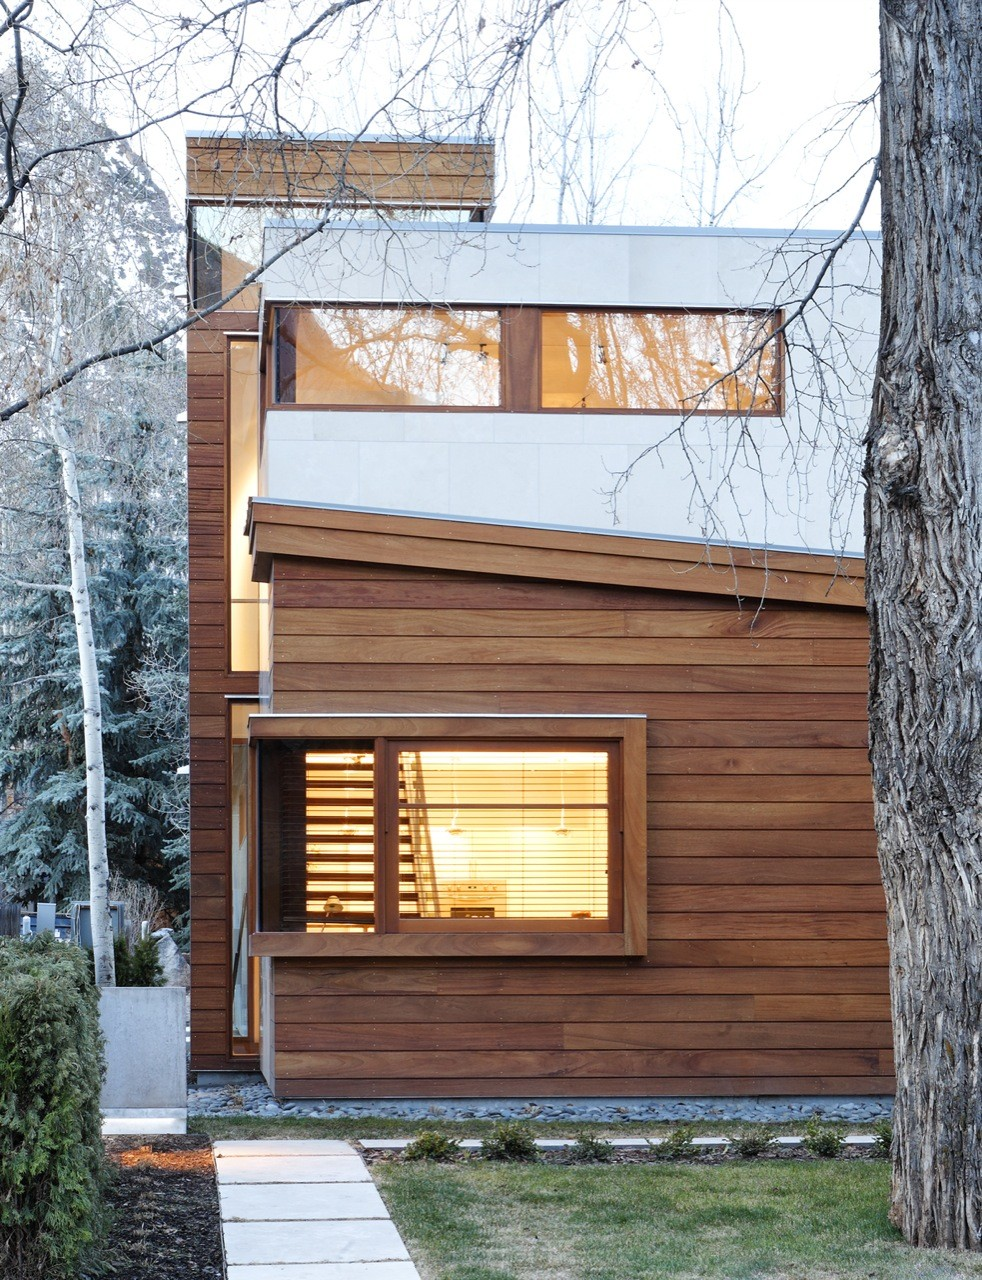 The nove 1 residences by studio b architects in aspen for Aspen home design